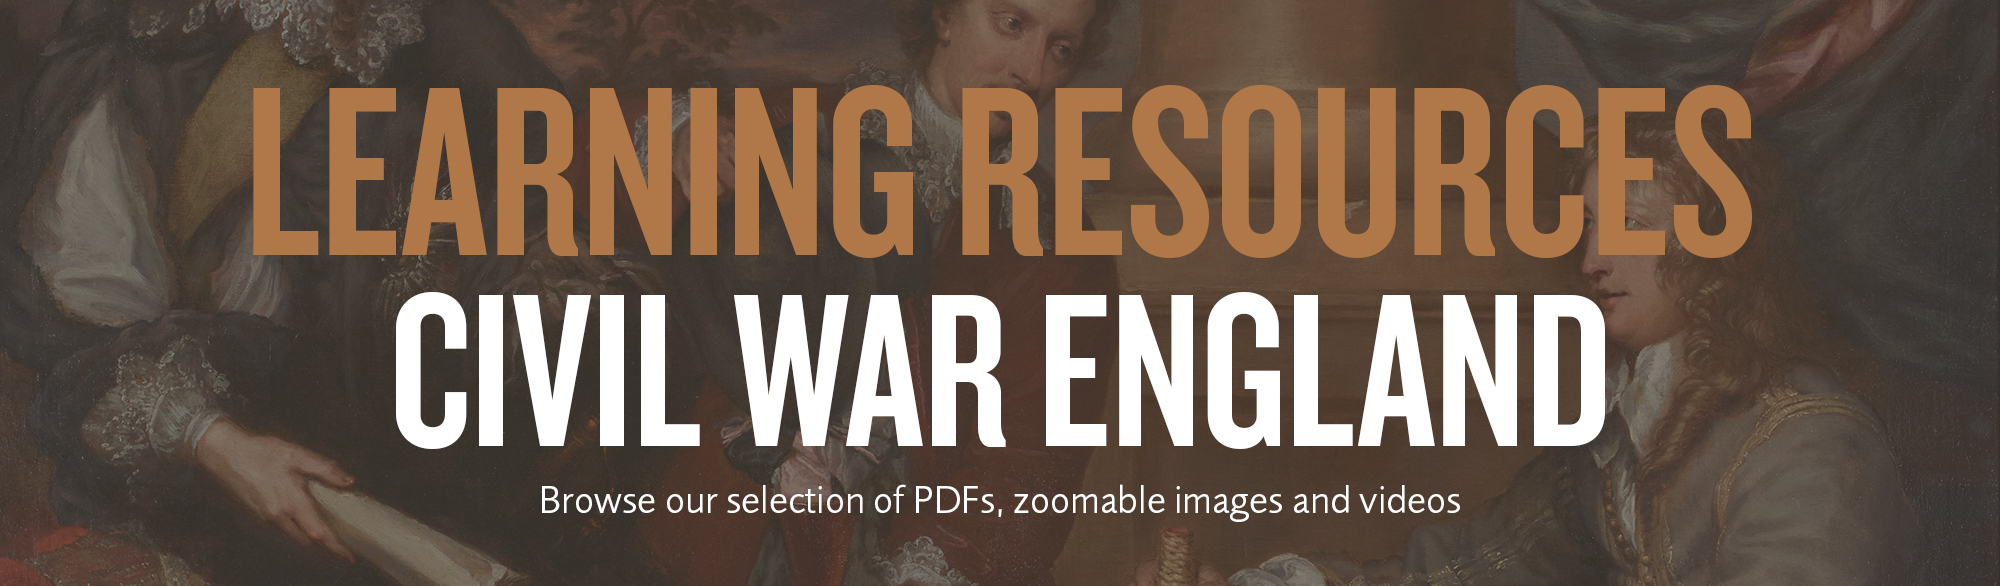 learning resource civil war england